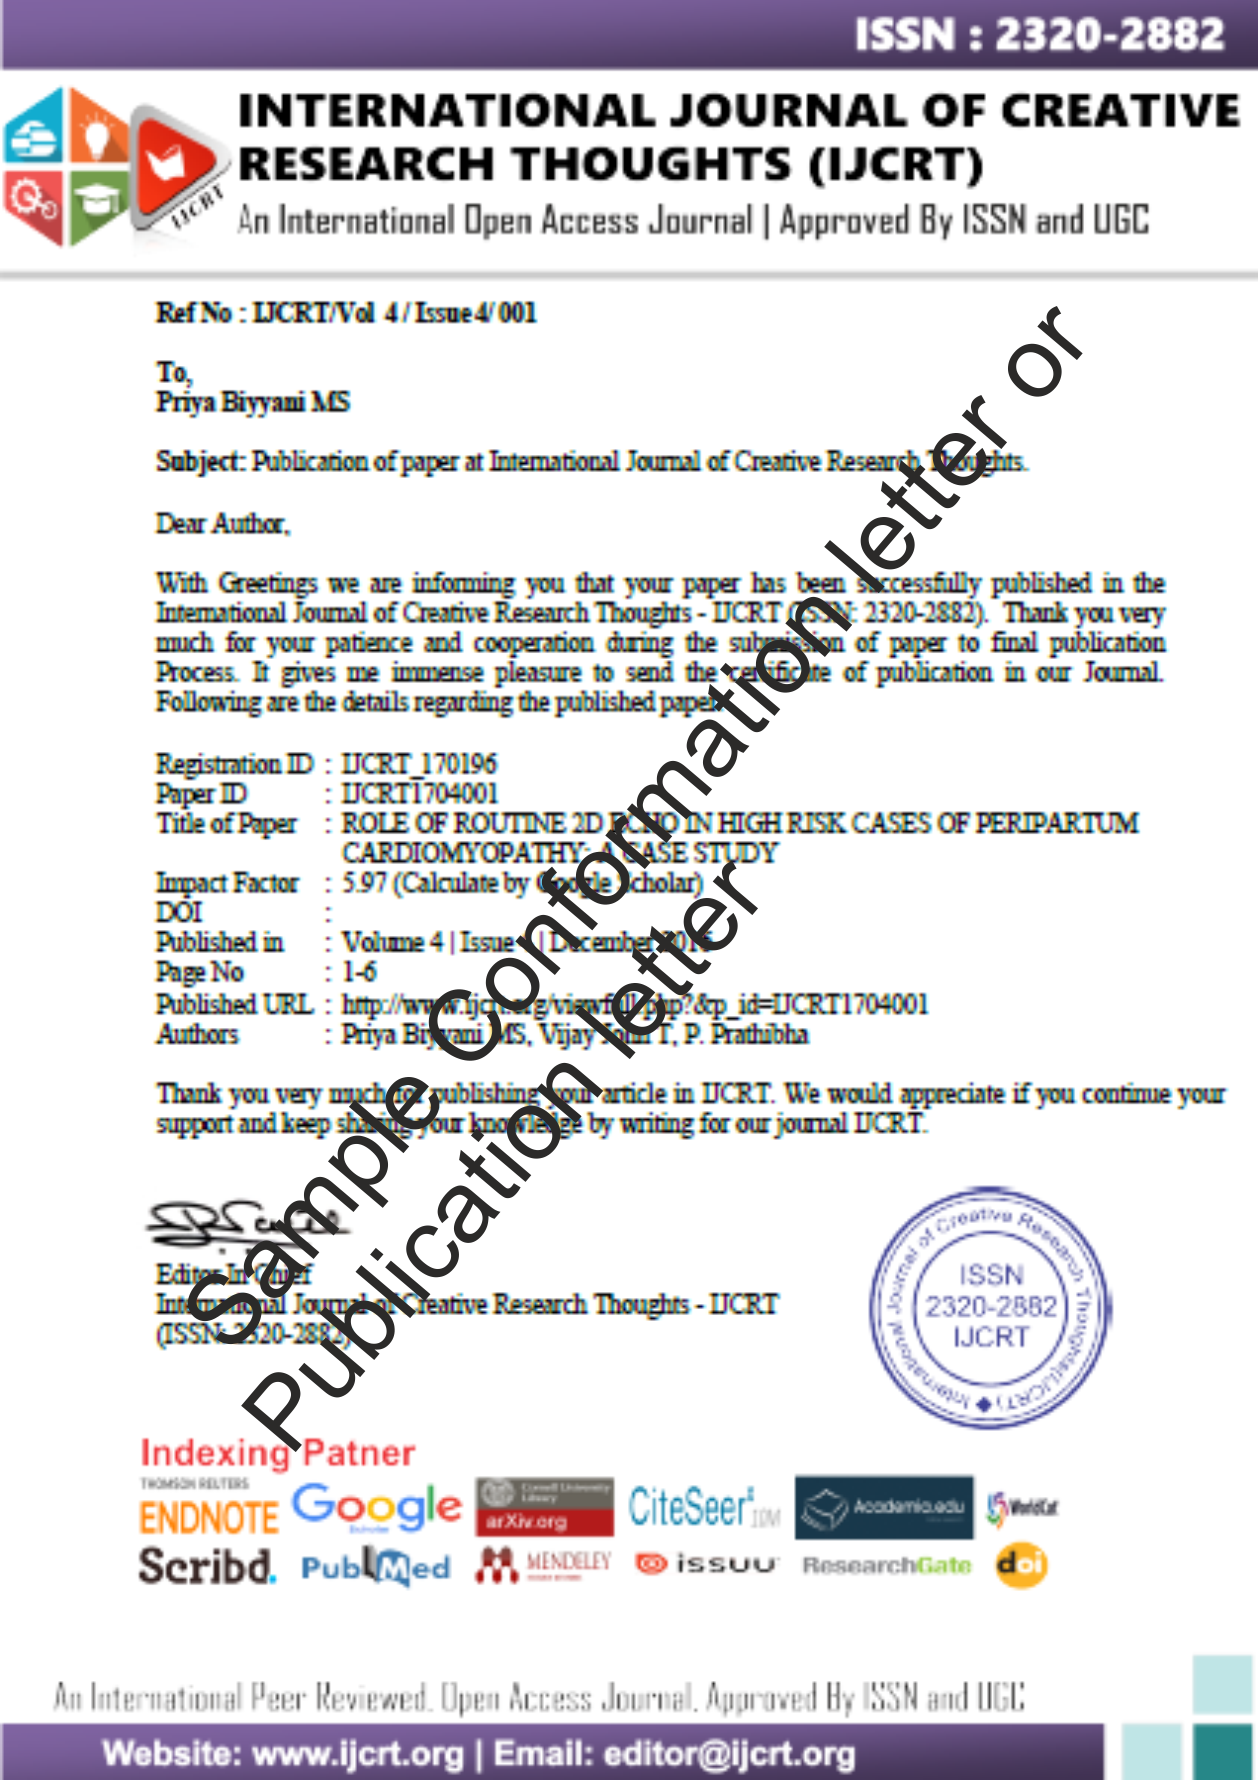 008 How To Publish Research Paper In International Journal Free Pdf Unusual Full